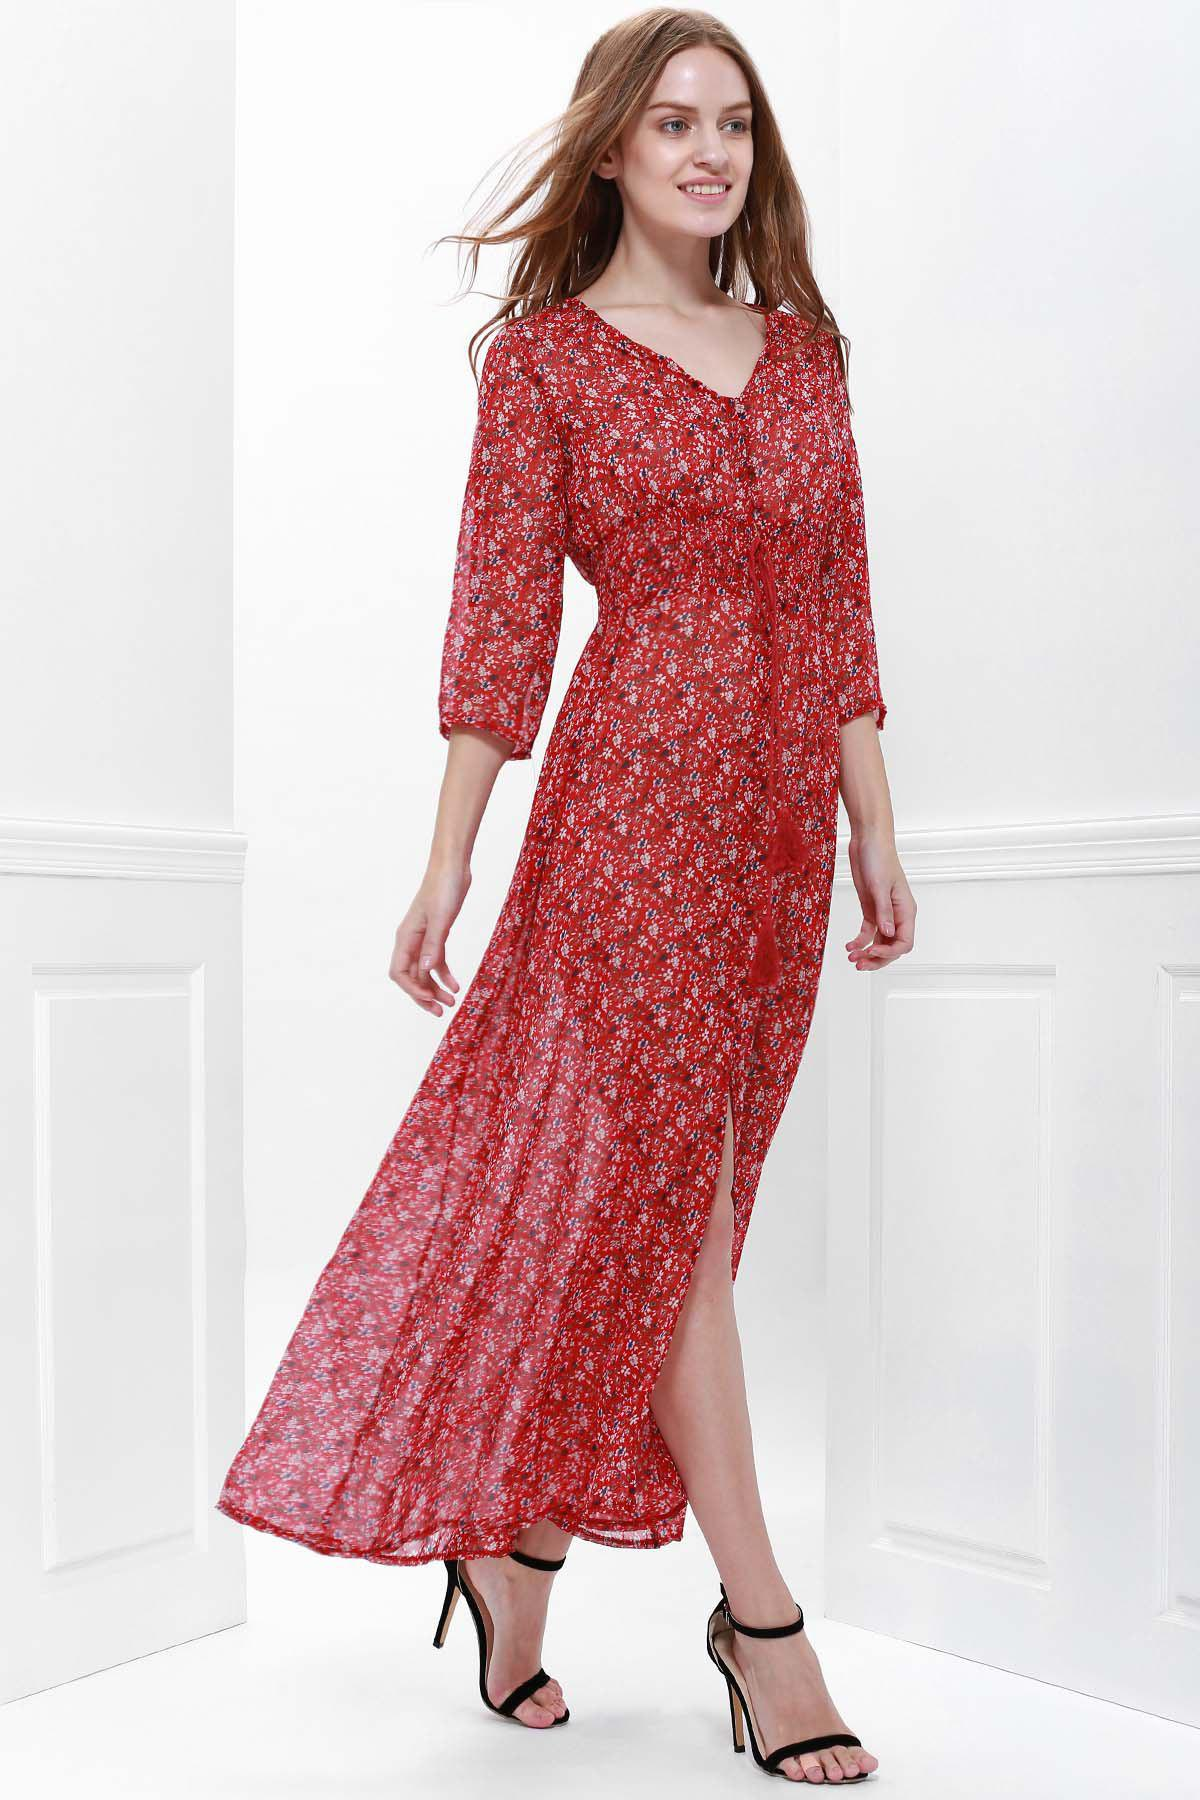 Bohemian Printed V-Neck High Slit 3/4 Sleeve Dress For Women